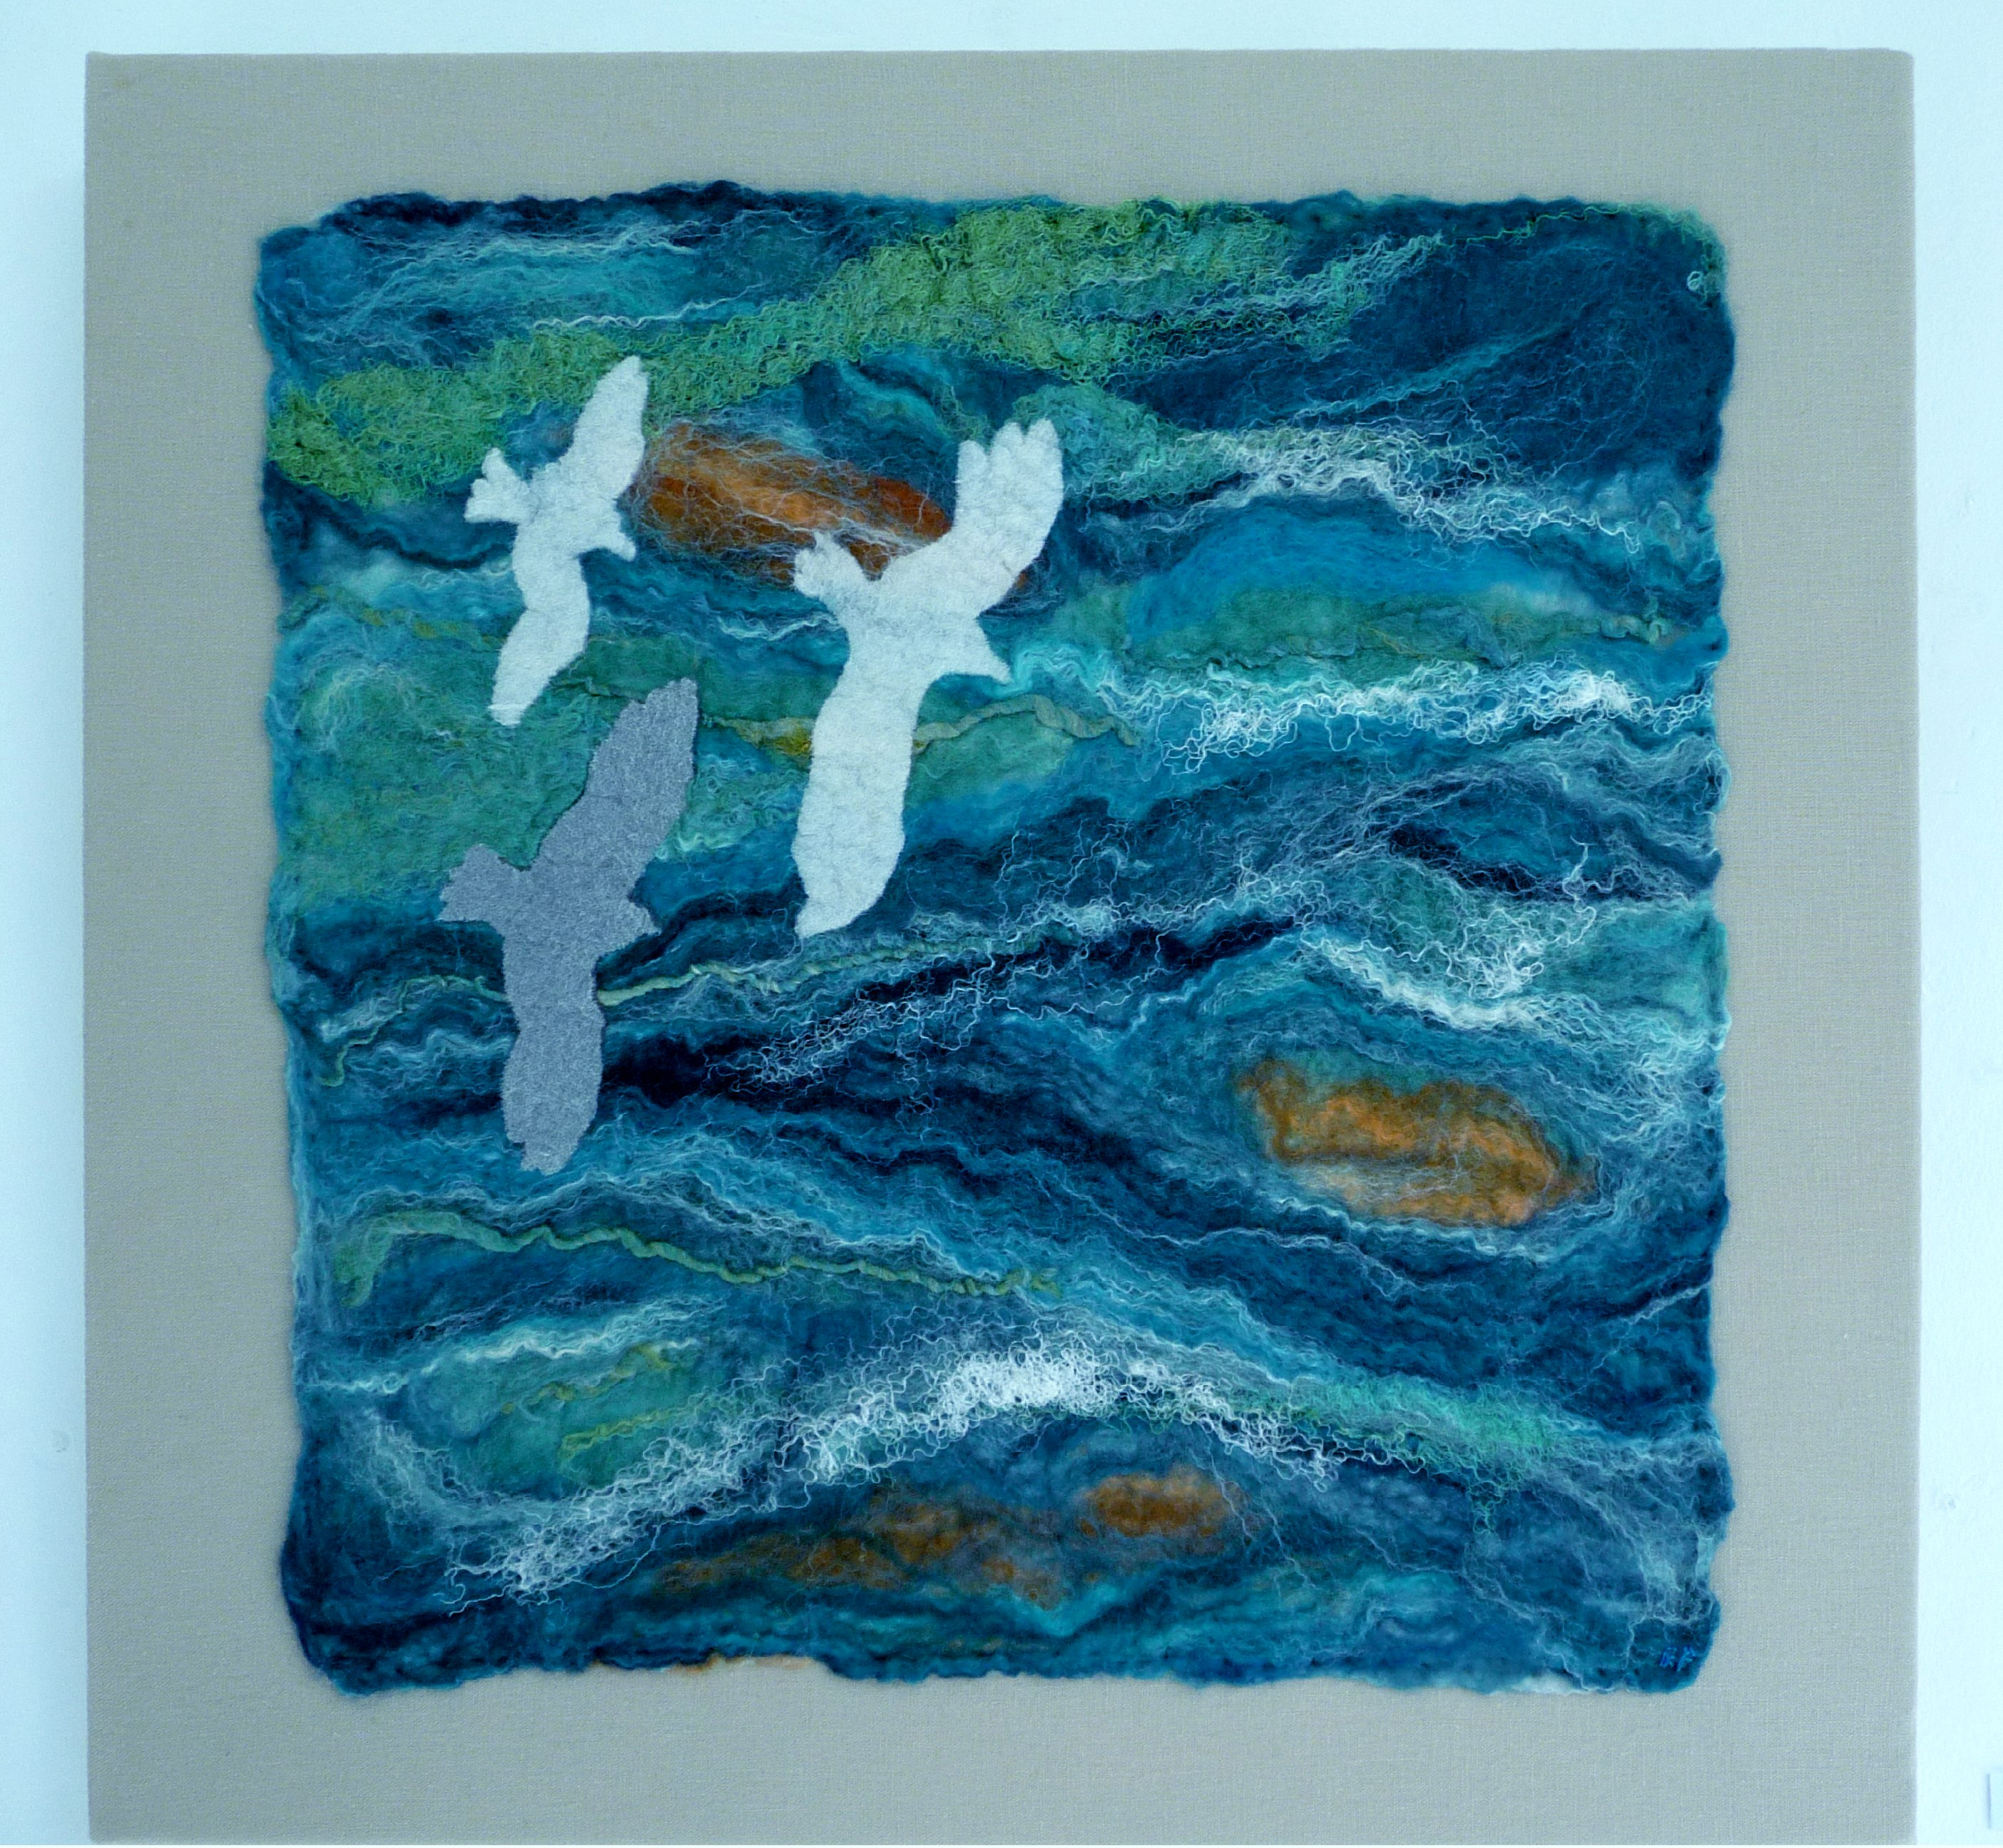 OVER AZURE SEAS 1 by Rosey  Paul, hand-felted textile